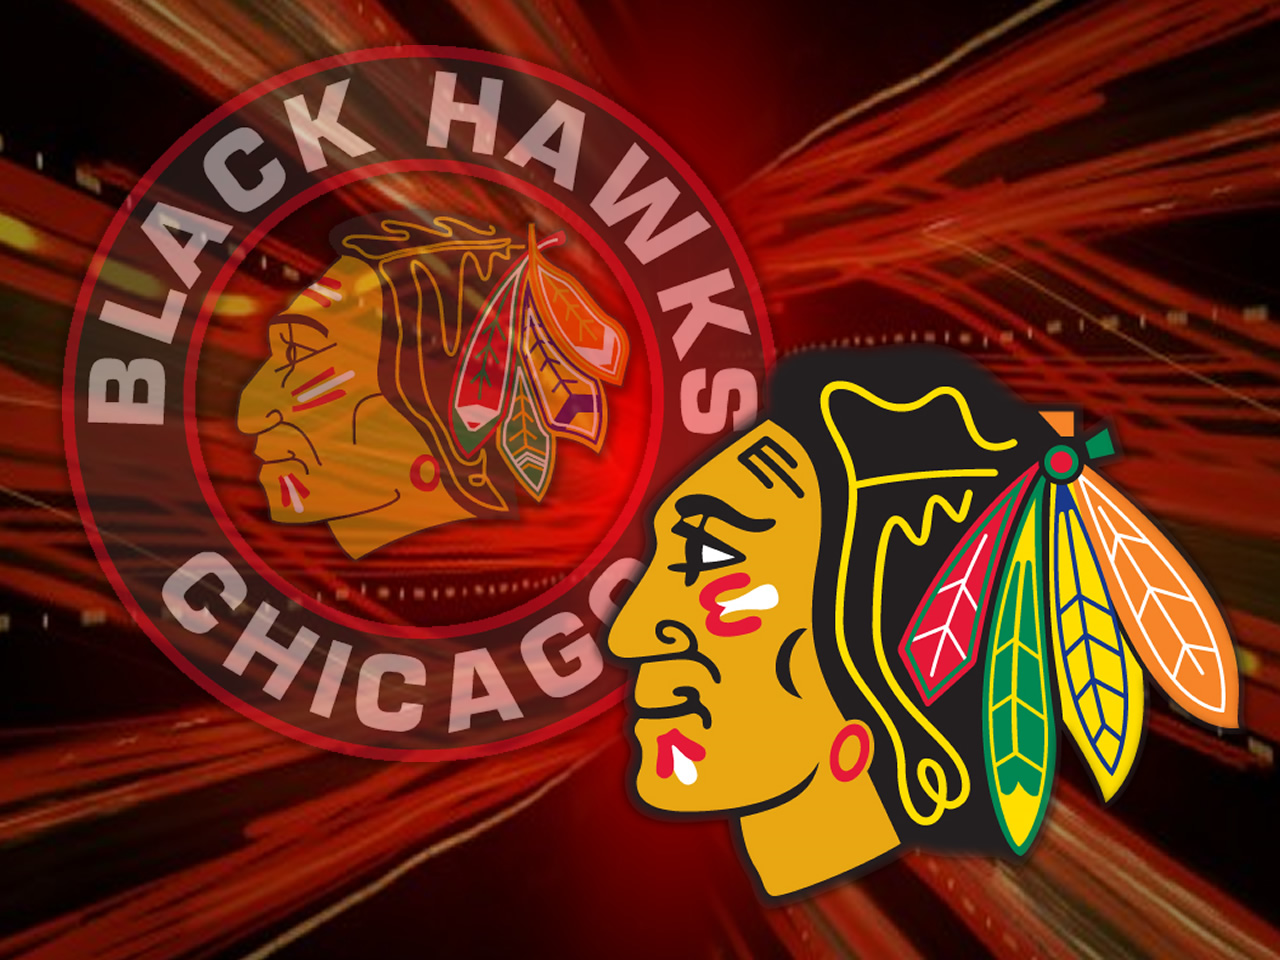 Blackhawks Wallpaper | DroidForums net | Android Forums & News